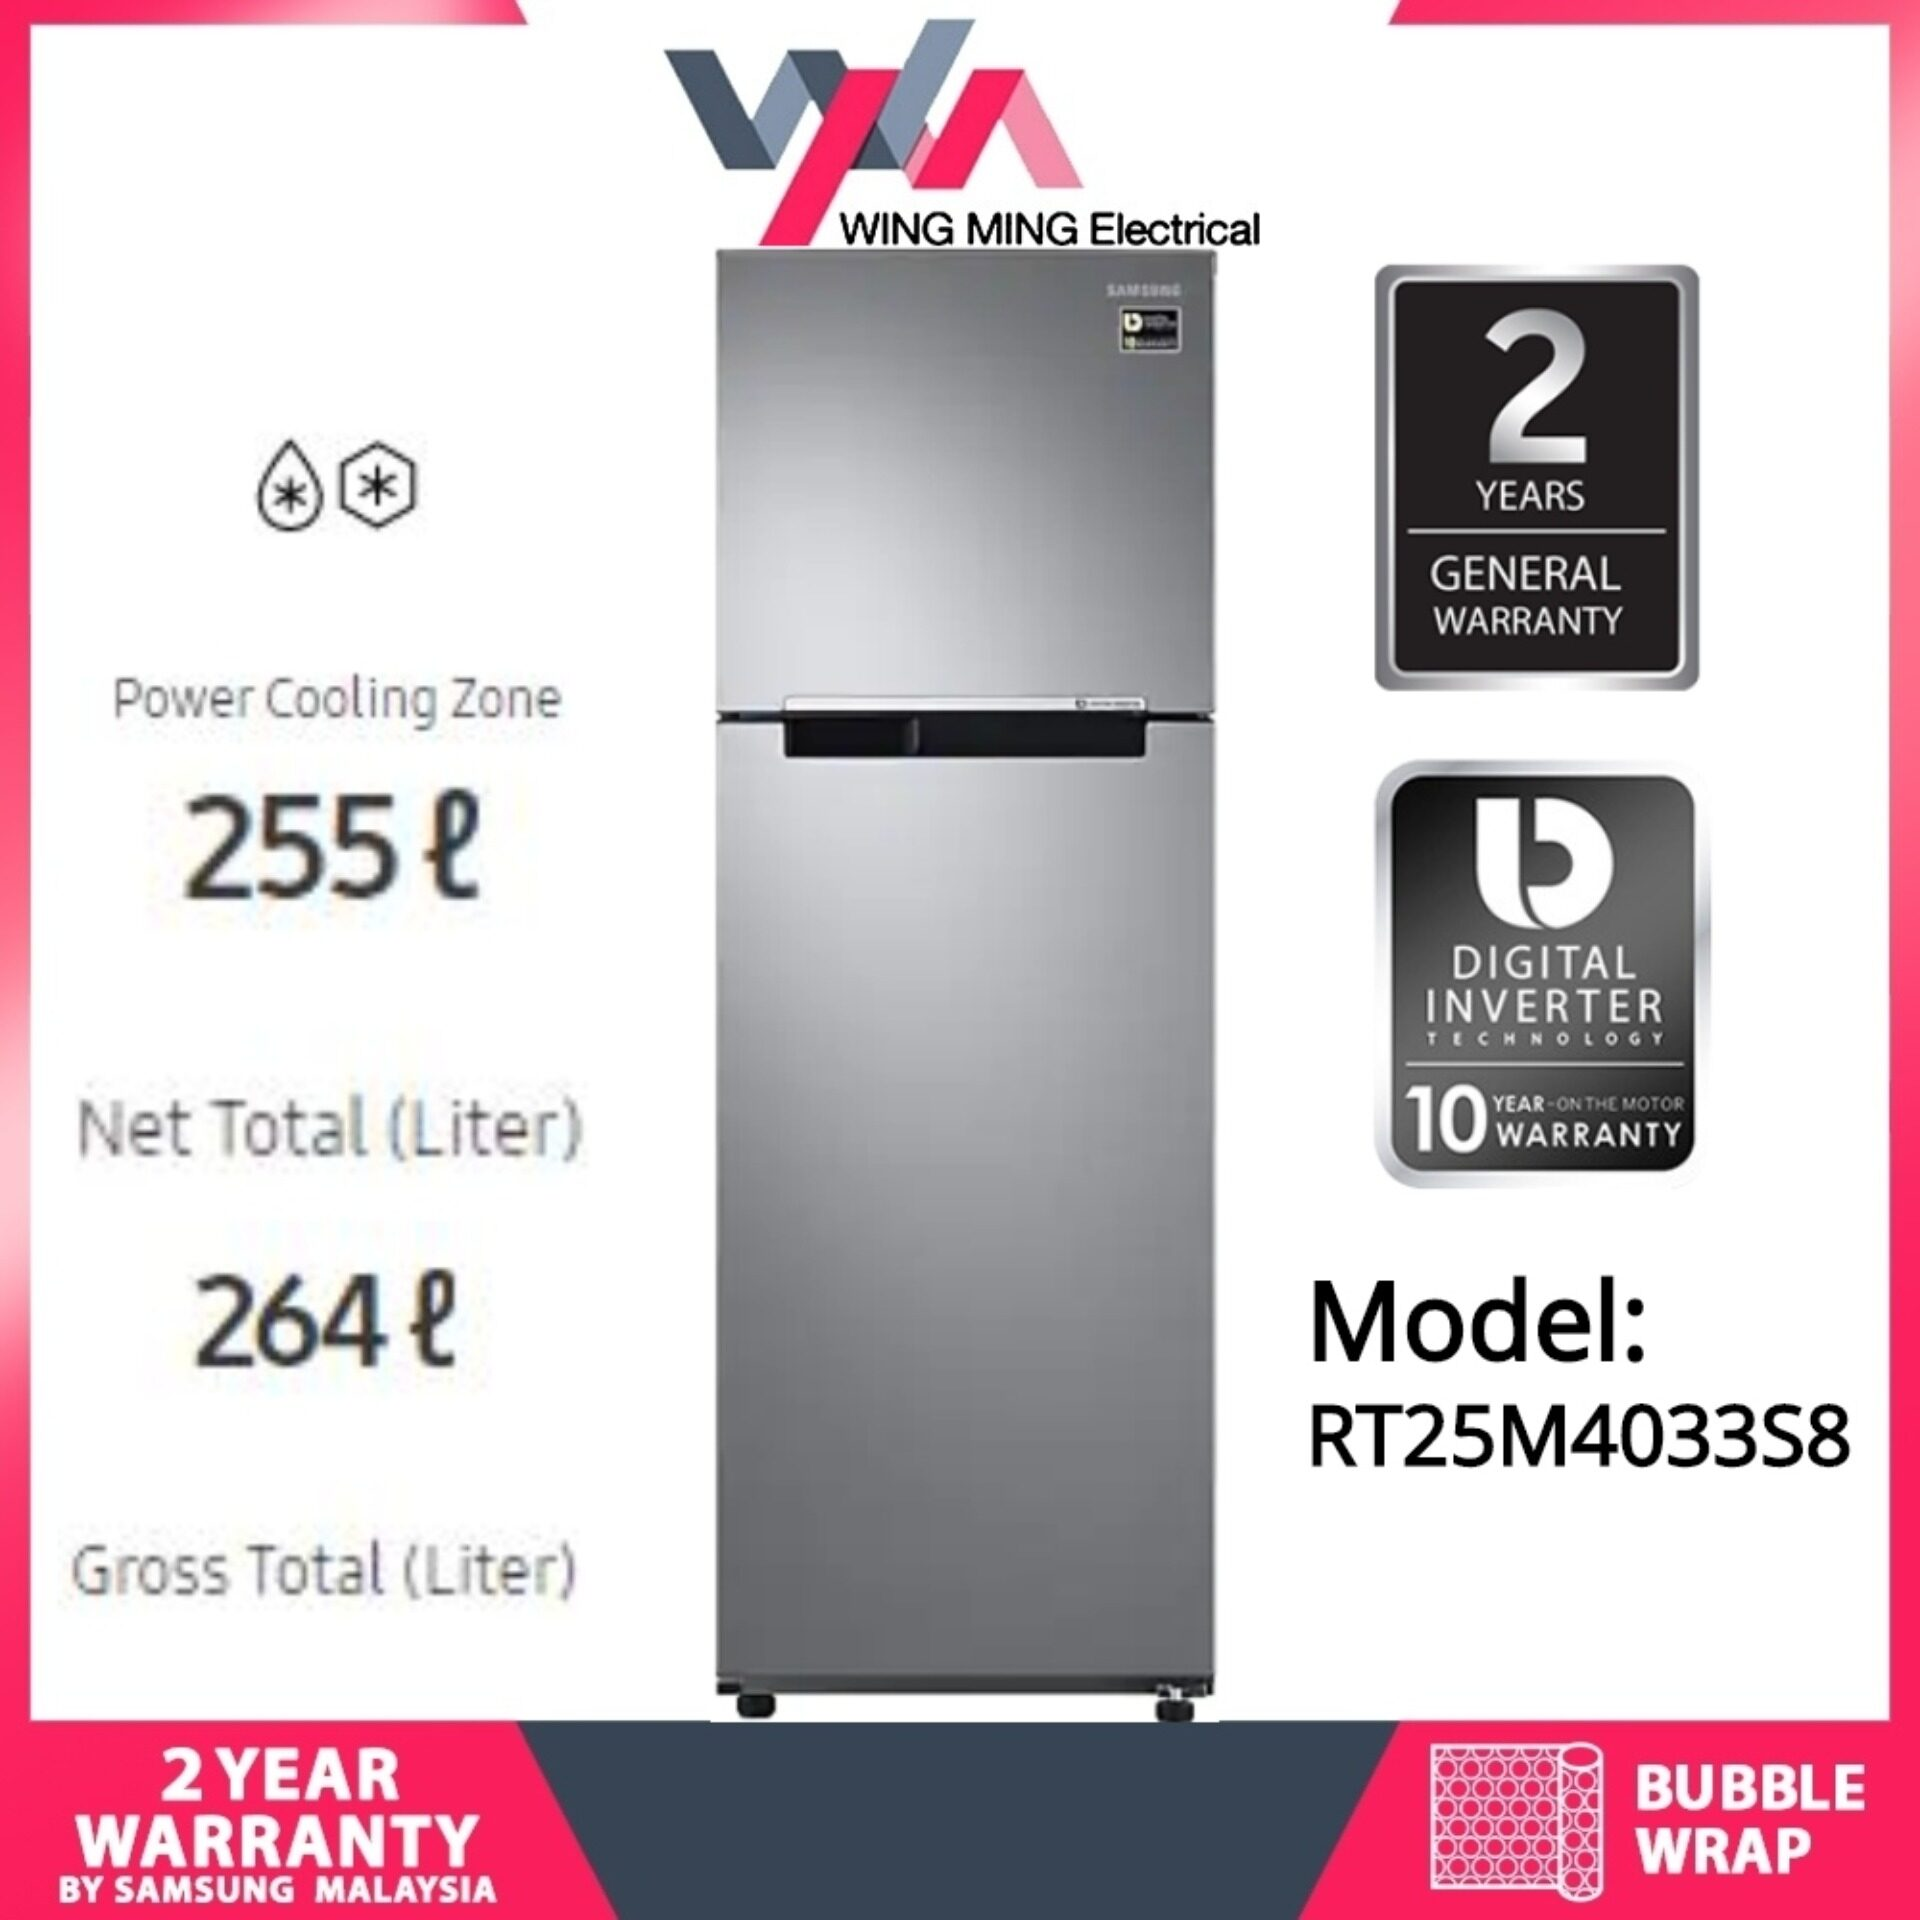 Samsung 264L Refrigerator Fridge Top Mount Freezer with Digital Inverter Technology Fridge 2 Years General + 10 Years Compressor Official Warranty By Samsung Malaysia (RT25M4033S8 | RT25M4033S8/ME)